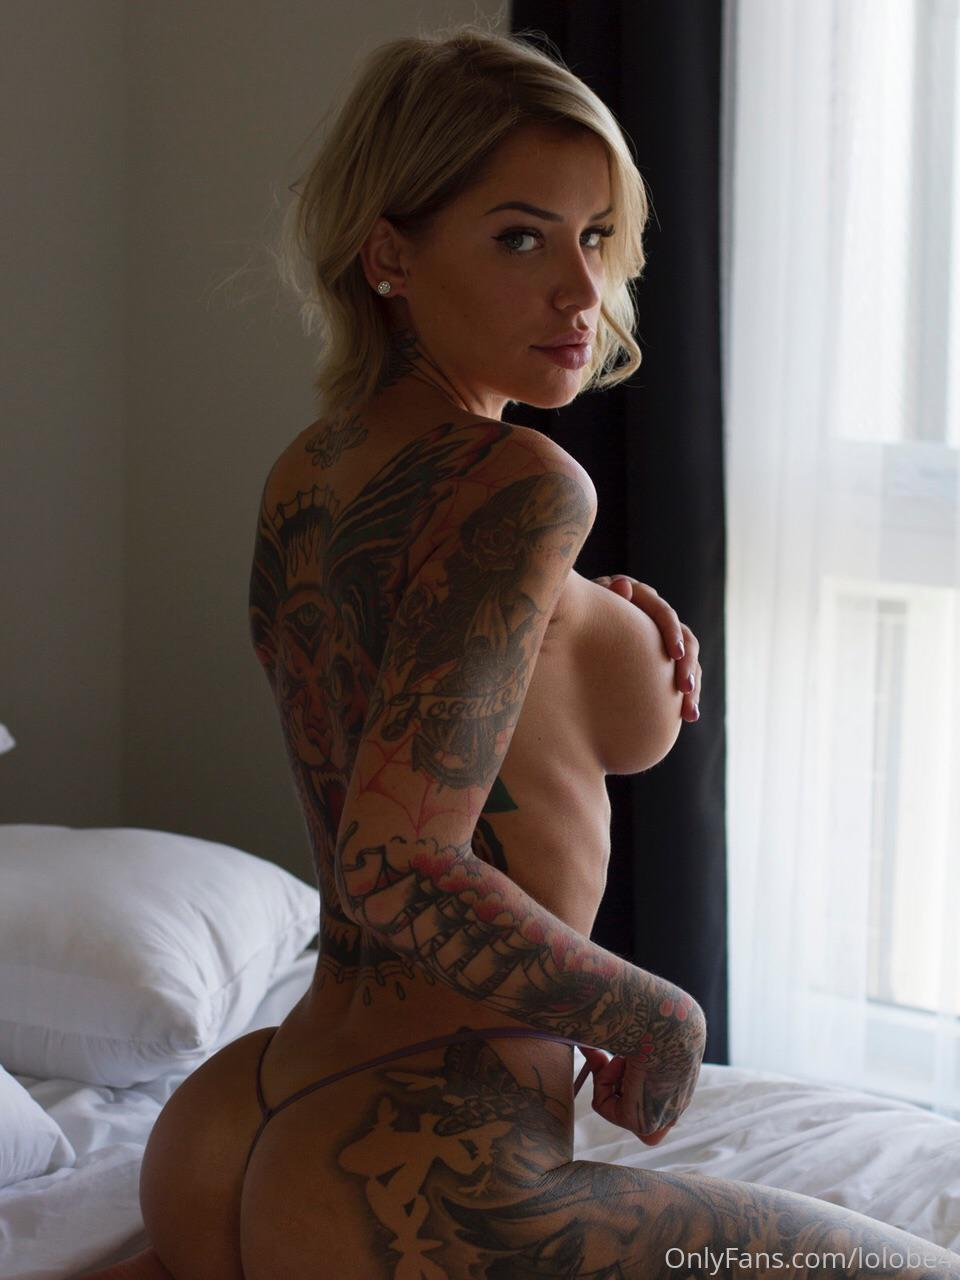 Lolobe4 Onlyfans Nude photo 30